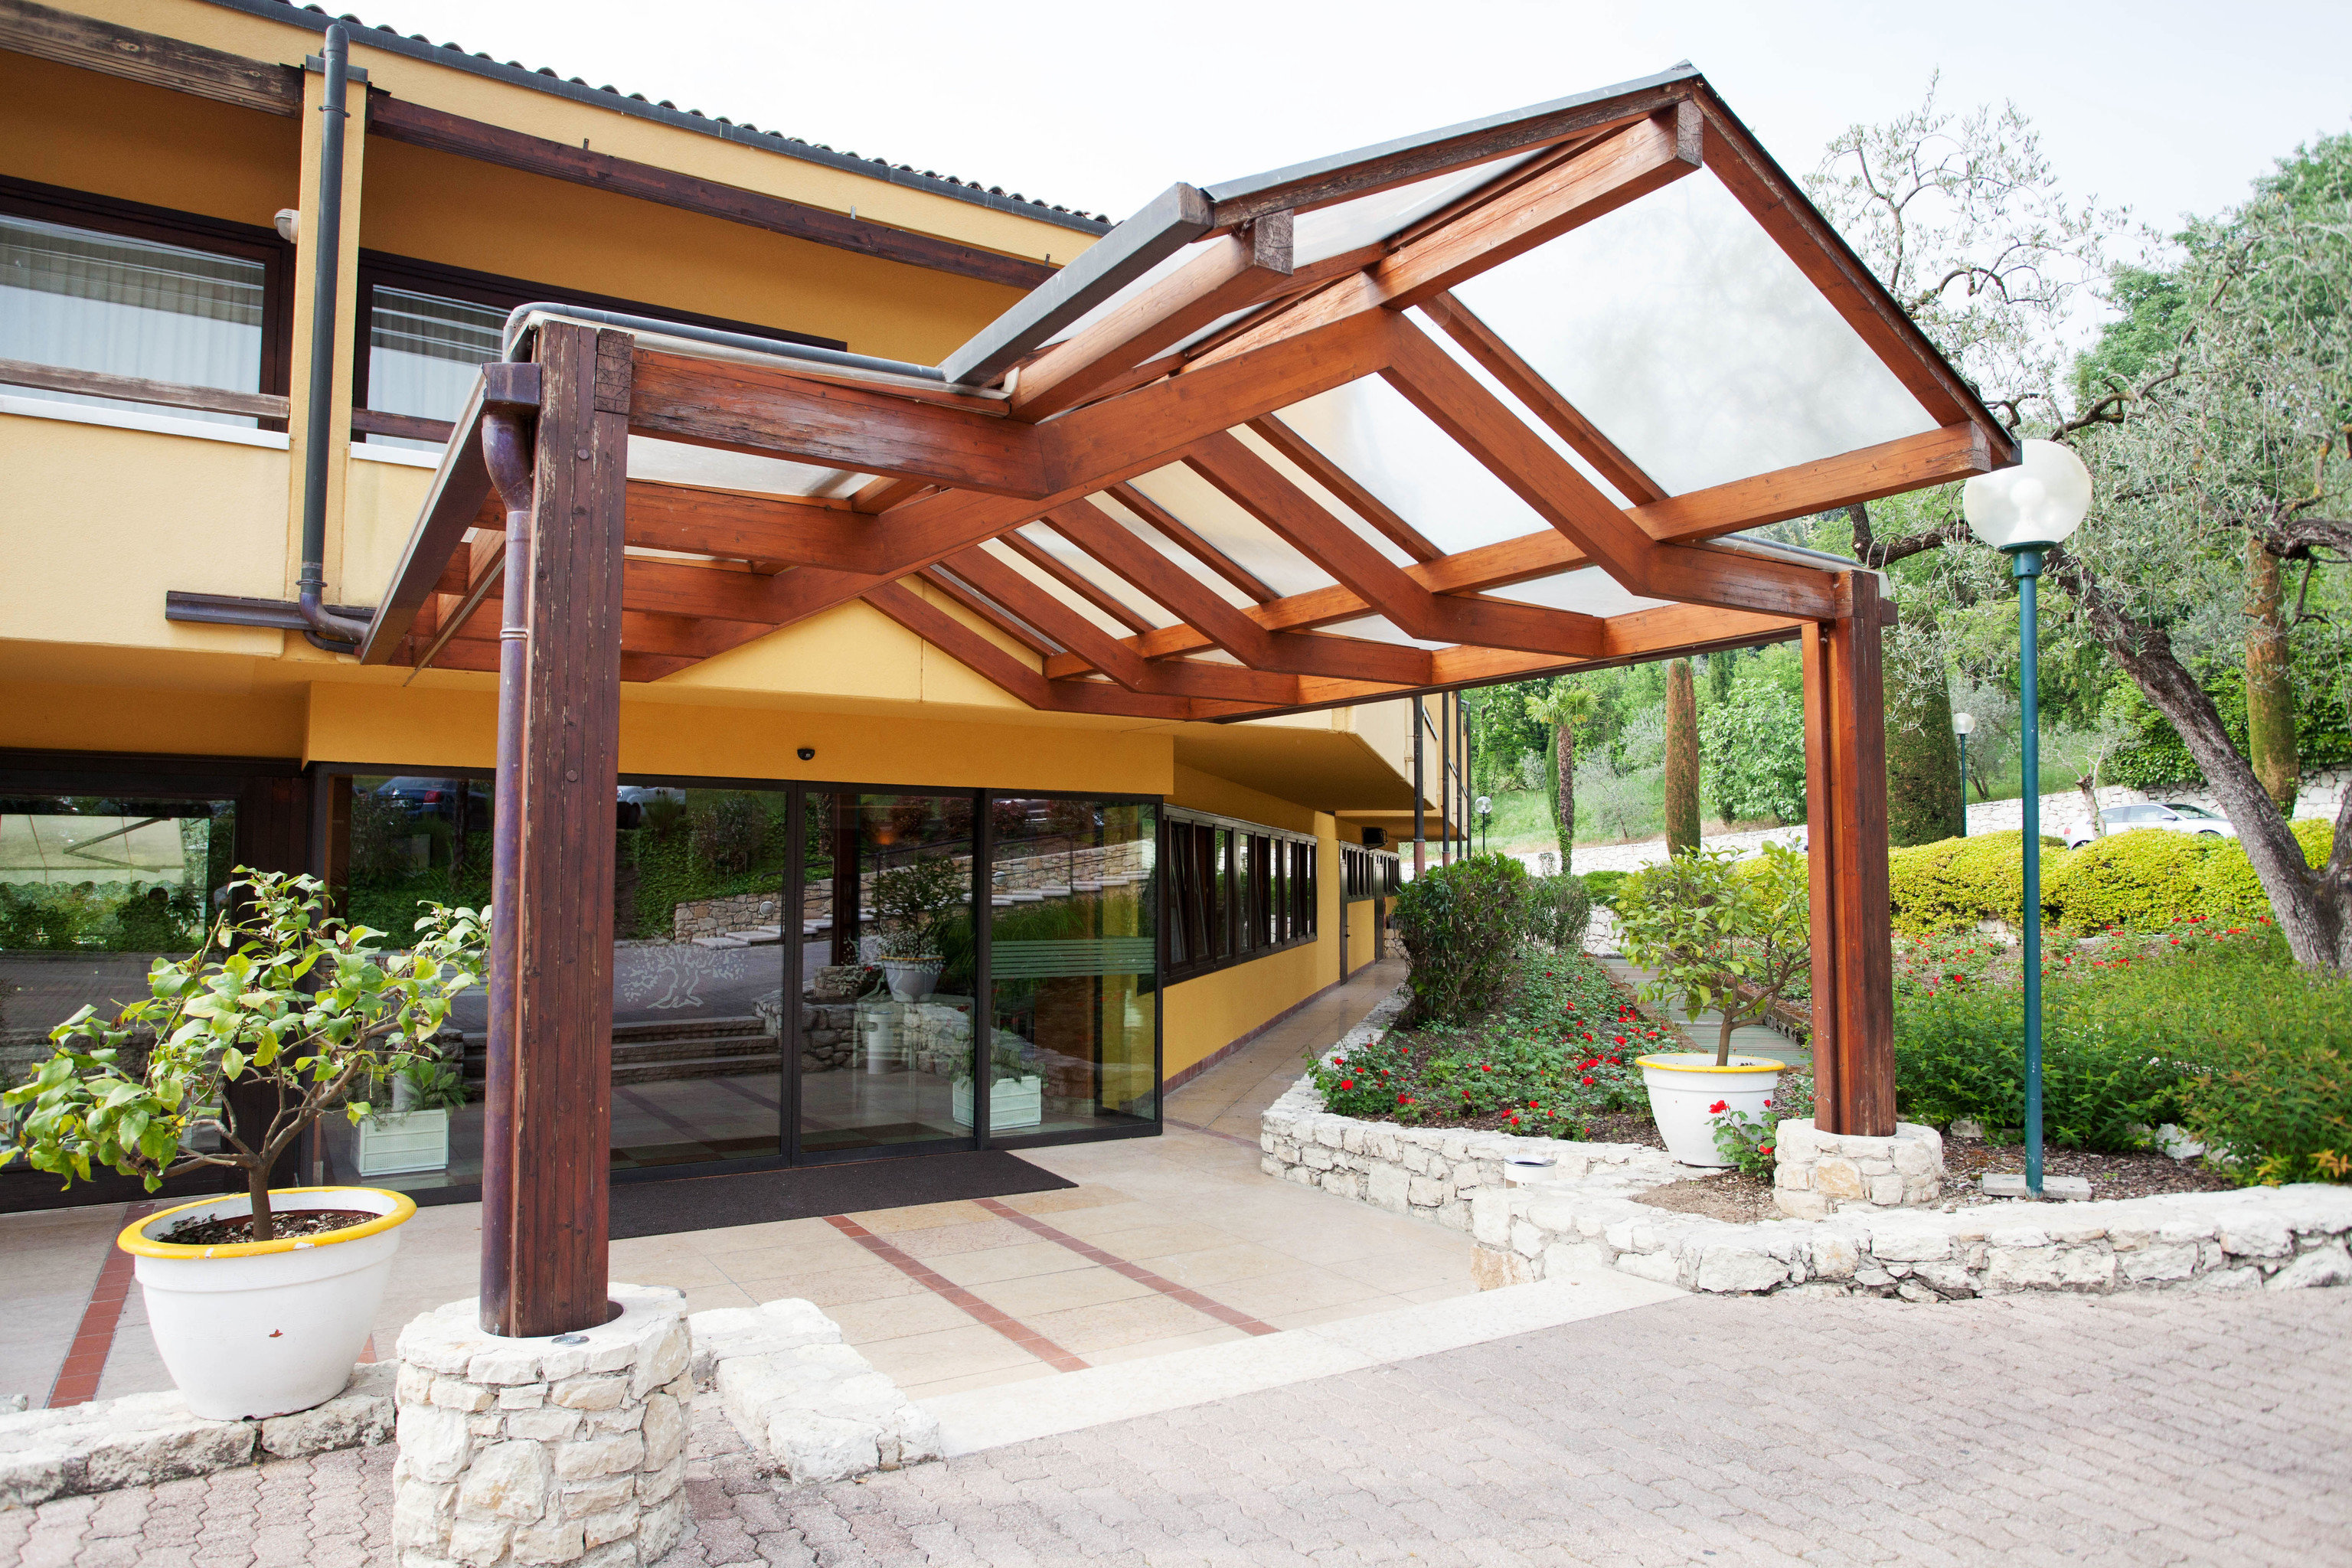 building property pergola outdoor structure porch home Villa Courtyard cottage backyard Patio